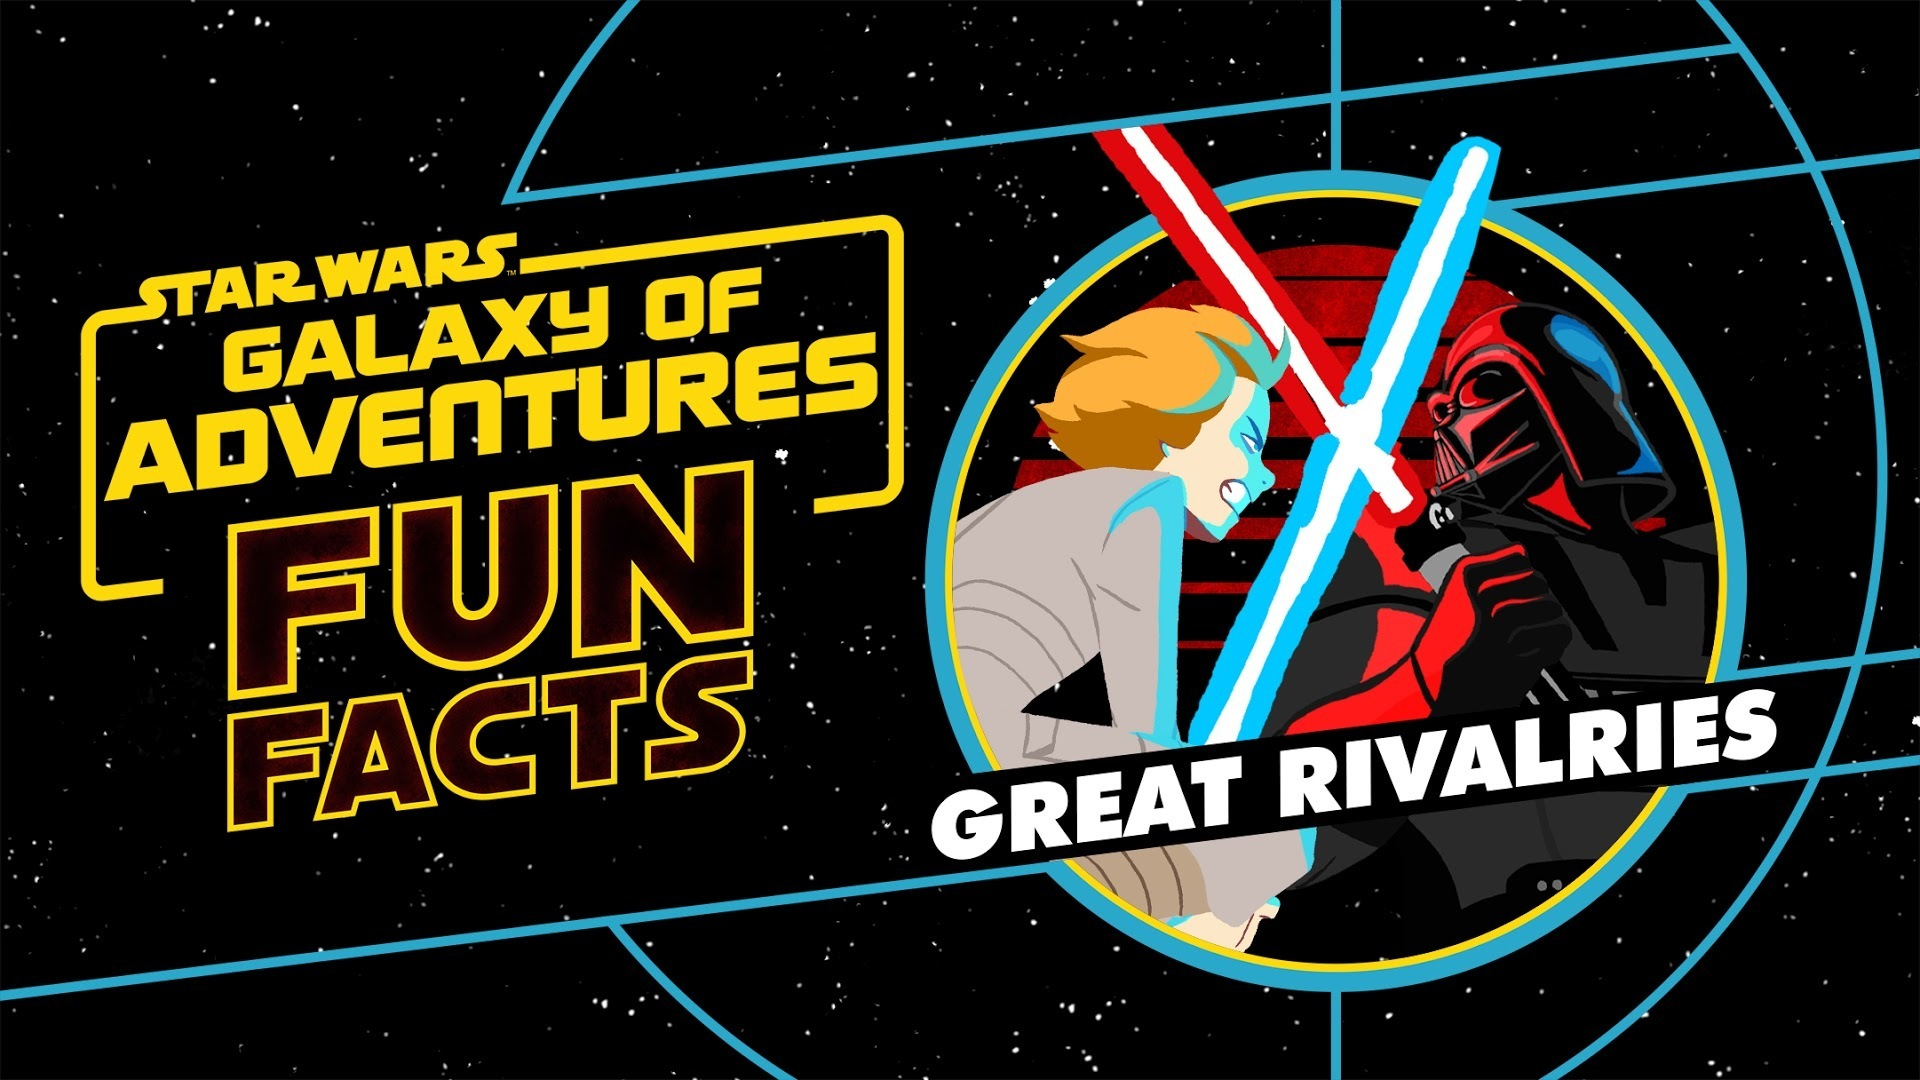 Great Rivalries | Star Wars Galaxy of Adventures Fun Facts